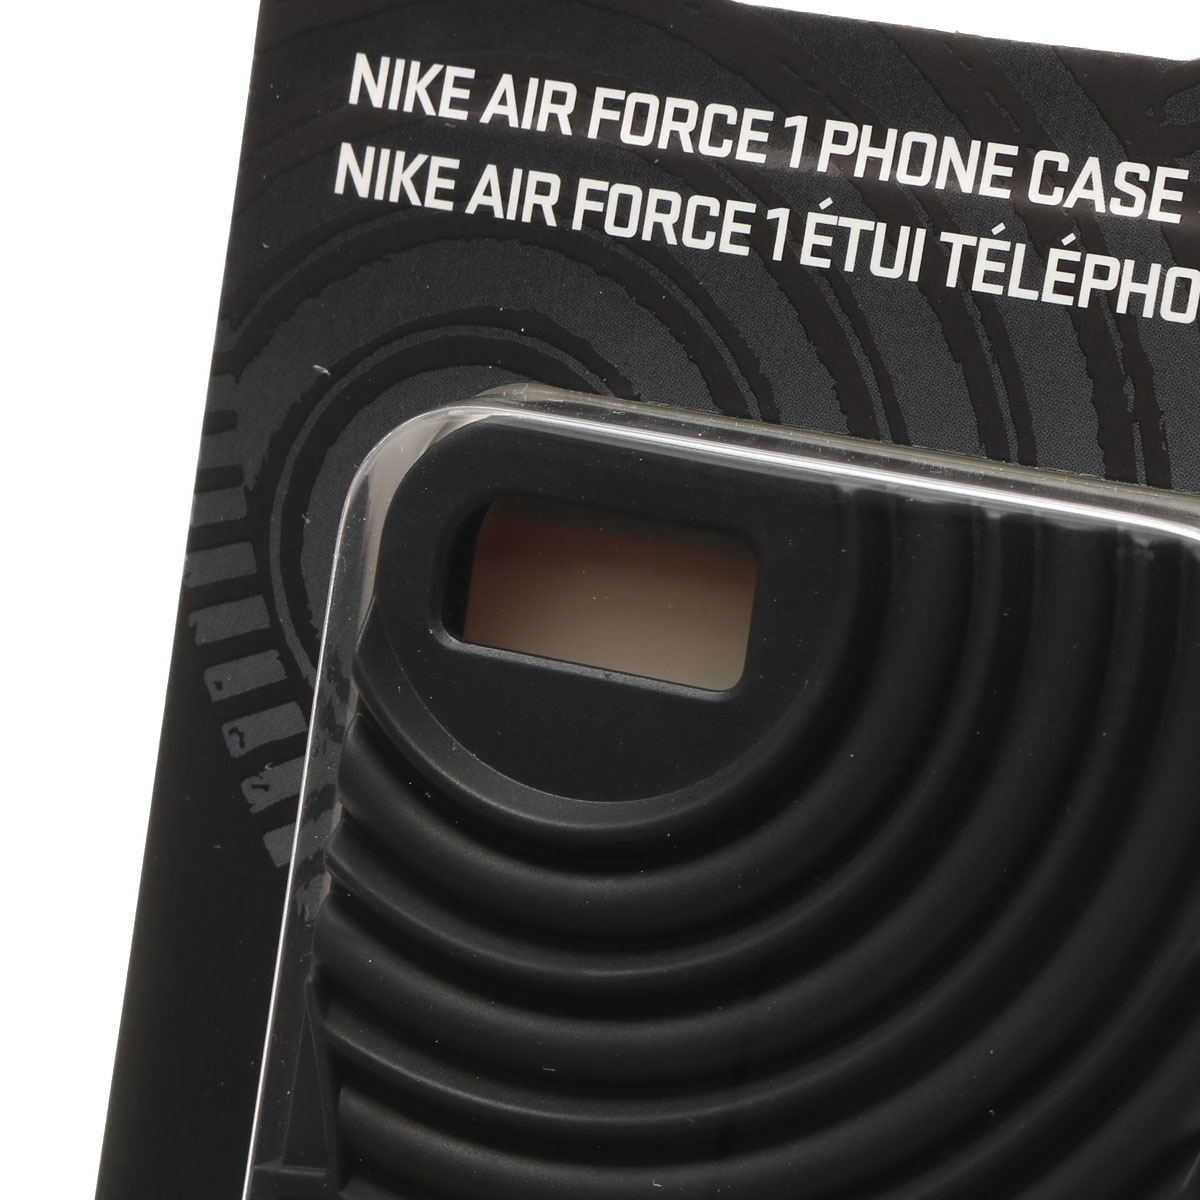 Atmos Pink Nike Air Force 1 Phone Case For Iphone 7 128gb Black Grs International Four 17sp I